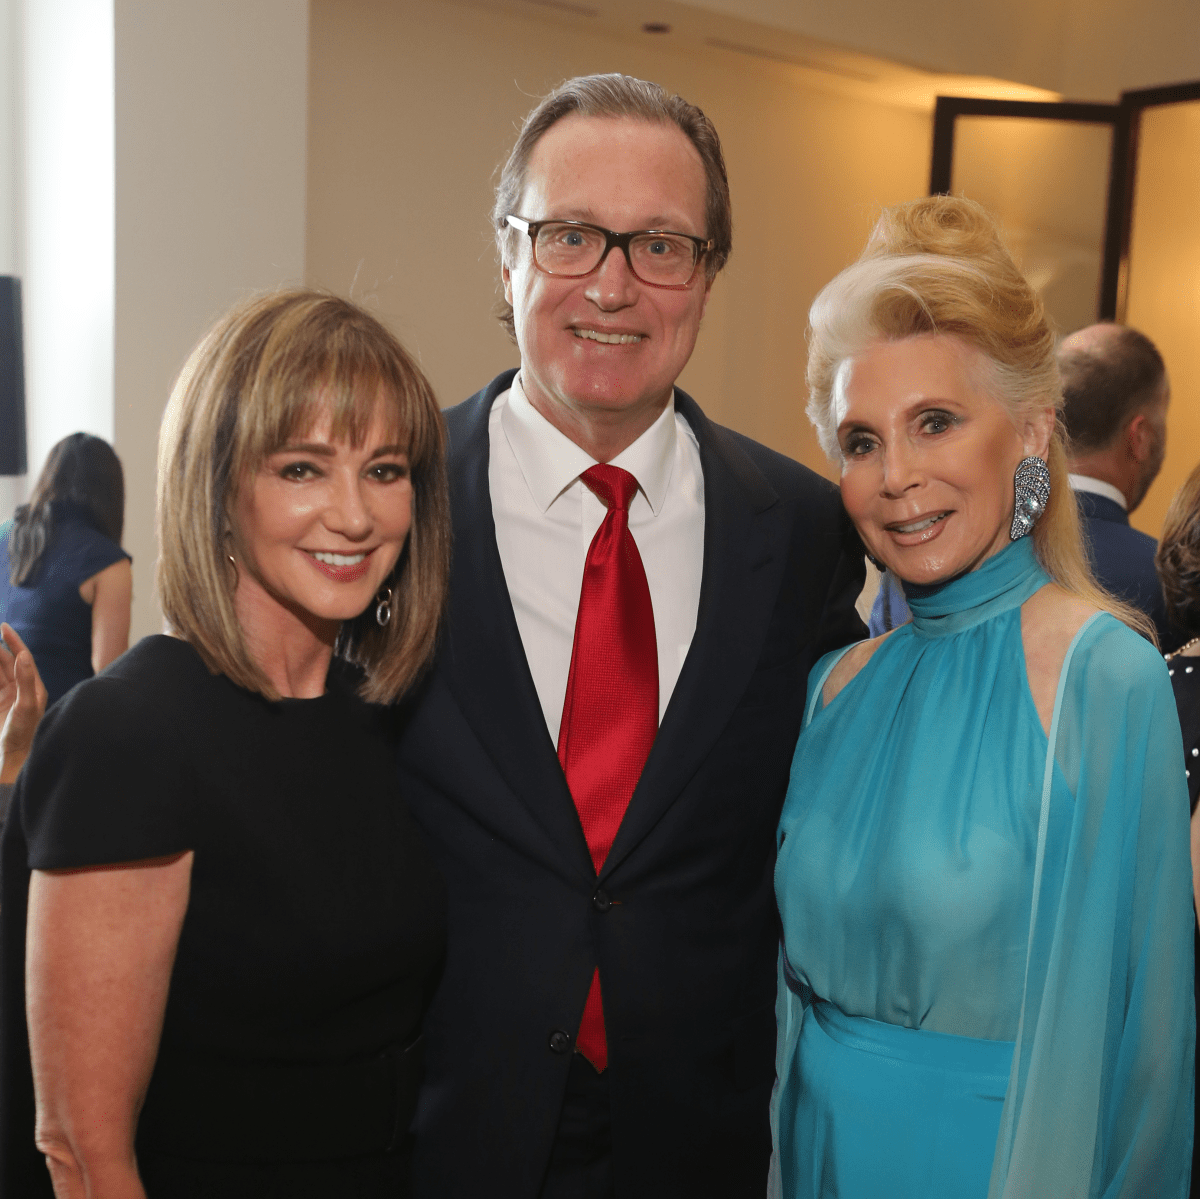 Saks MD Anderson benefit 4/16, Janet Gurwitch, Ron Franklin, Joan Schnitzer Levy